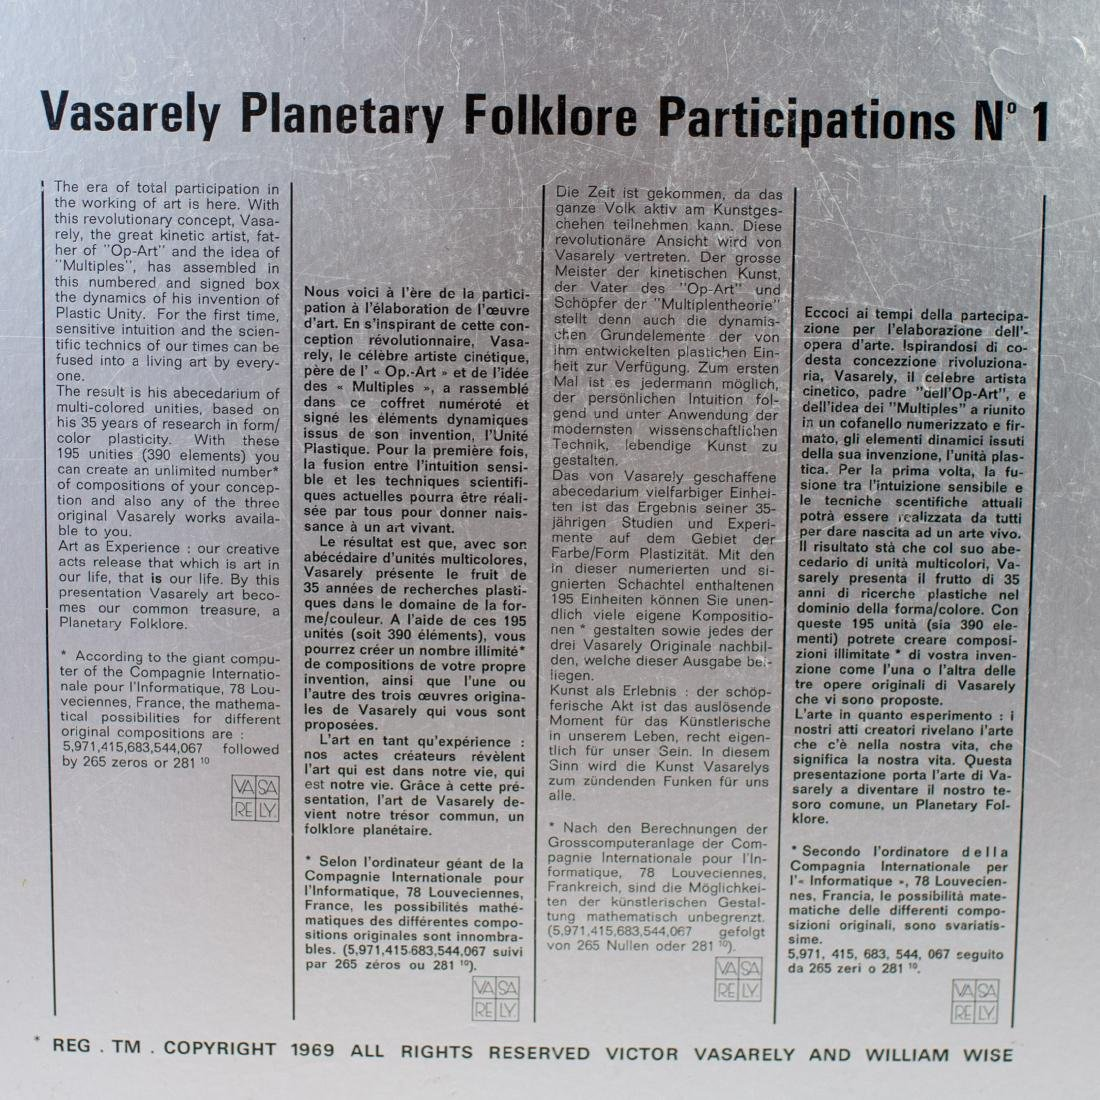 Victor Vasarely Planetary Folklore Participations No. 1 - 3